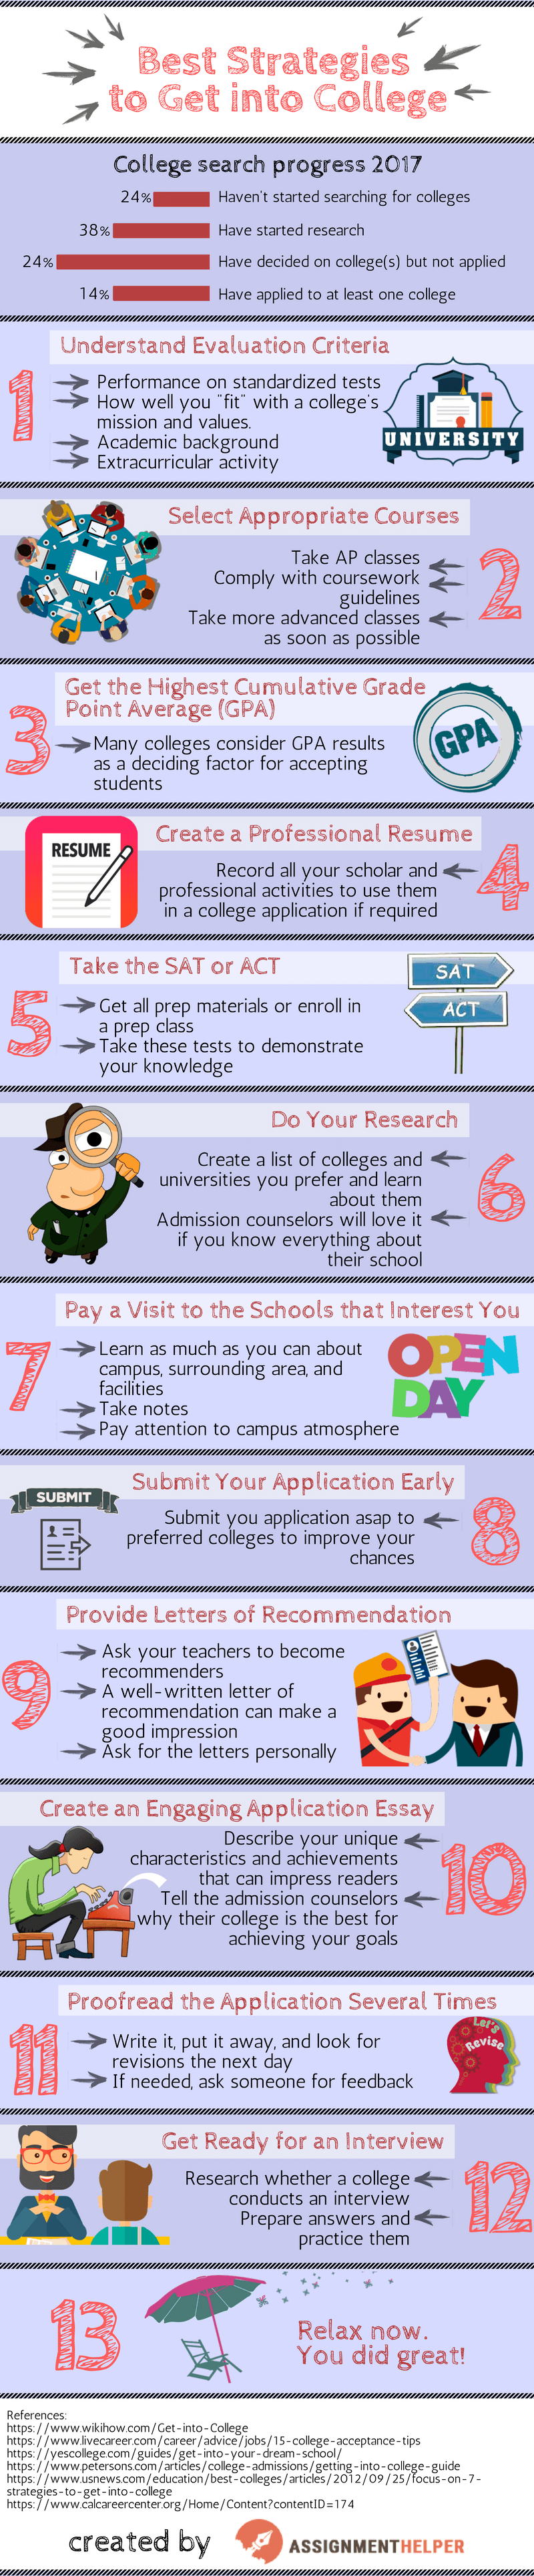 Best Strategies To Get Into College Infographic